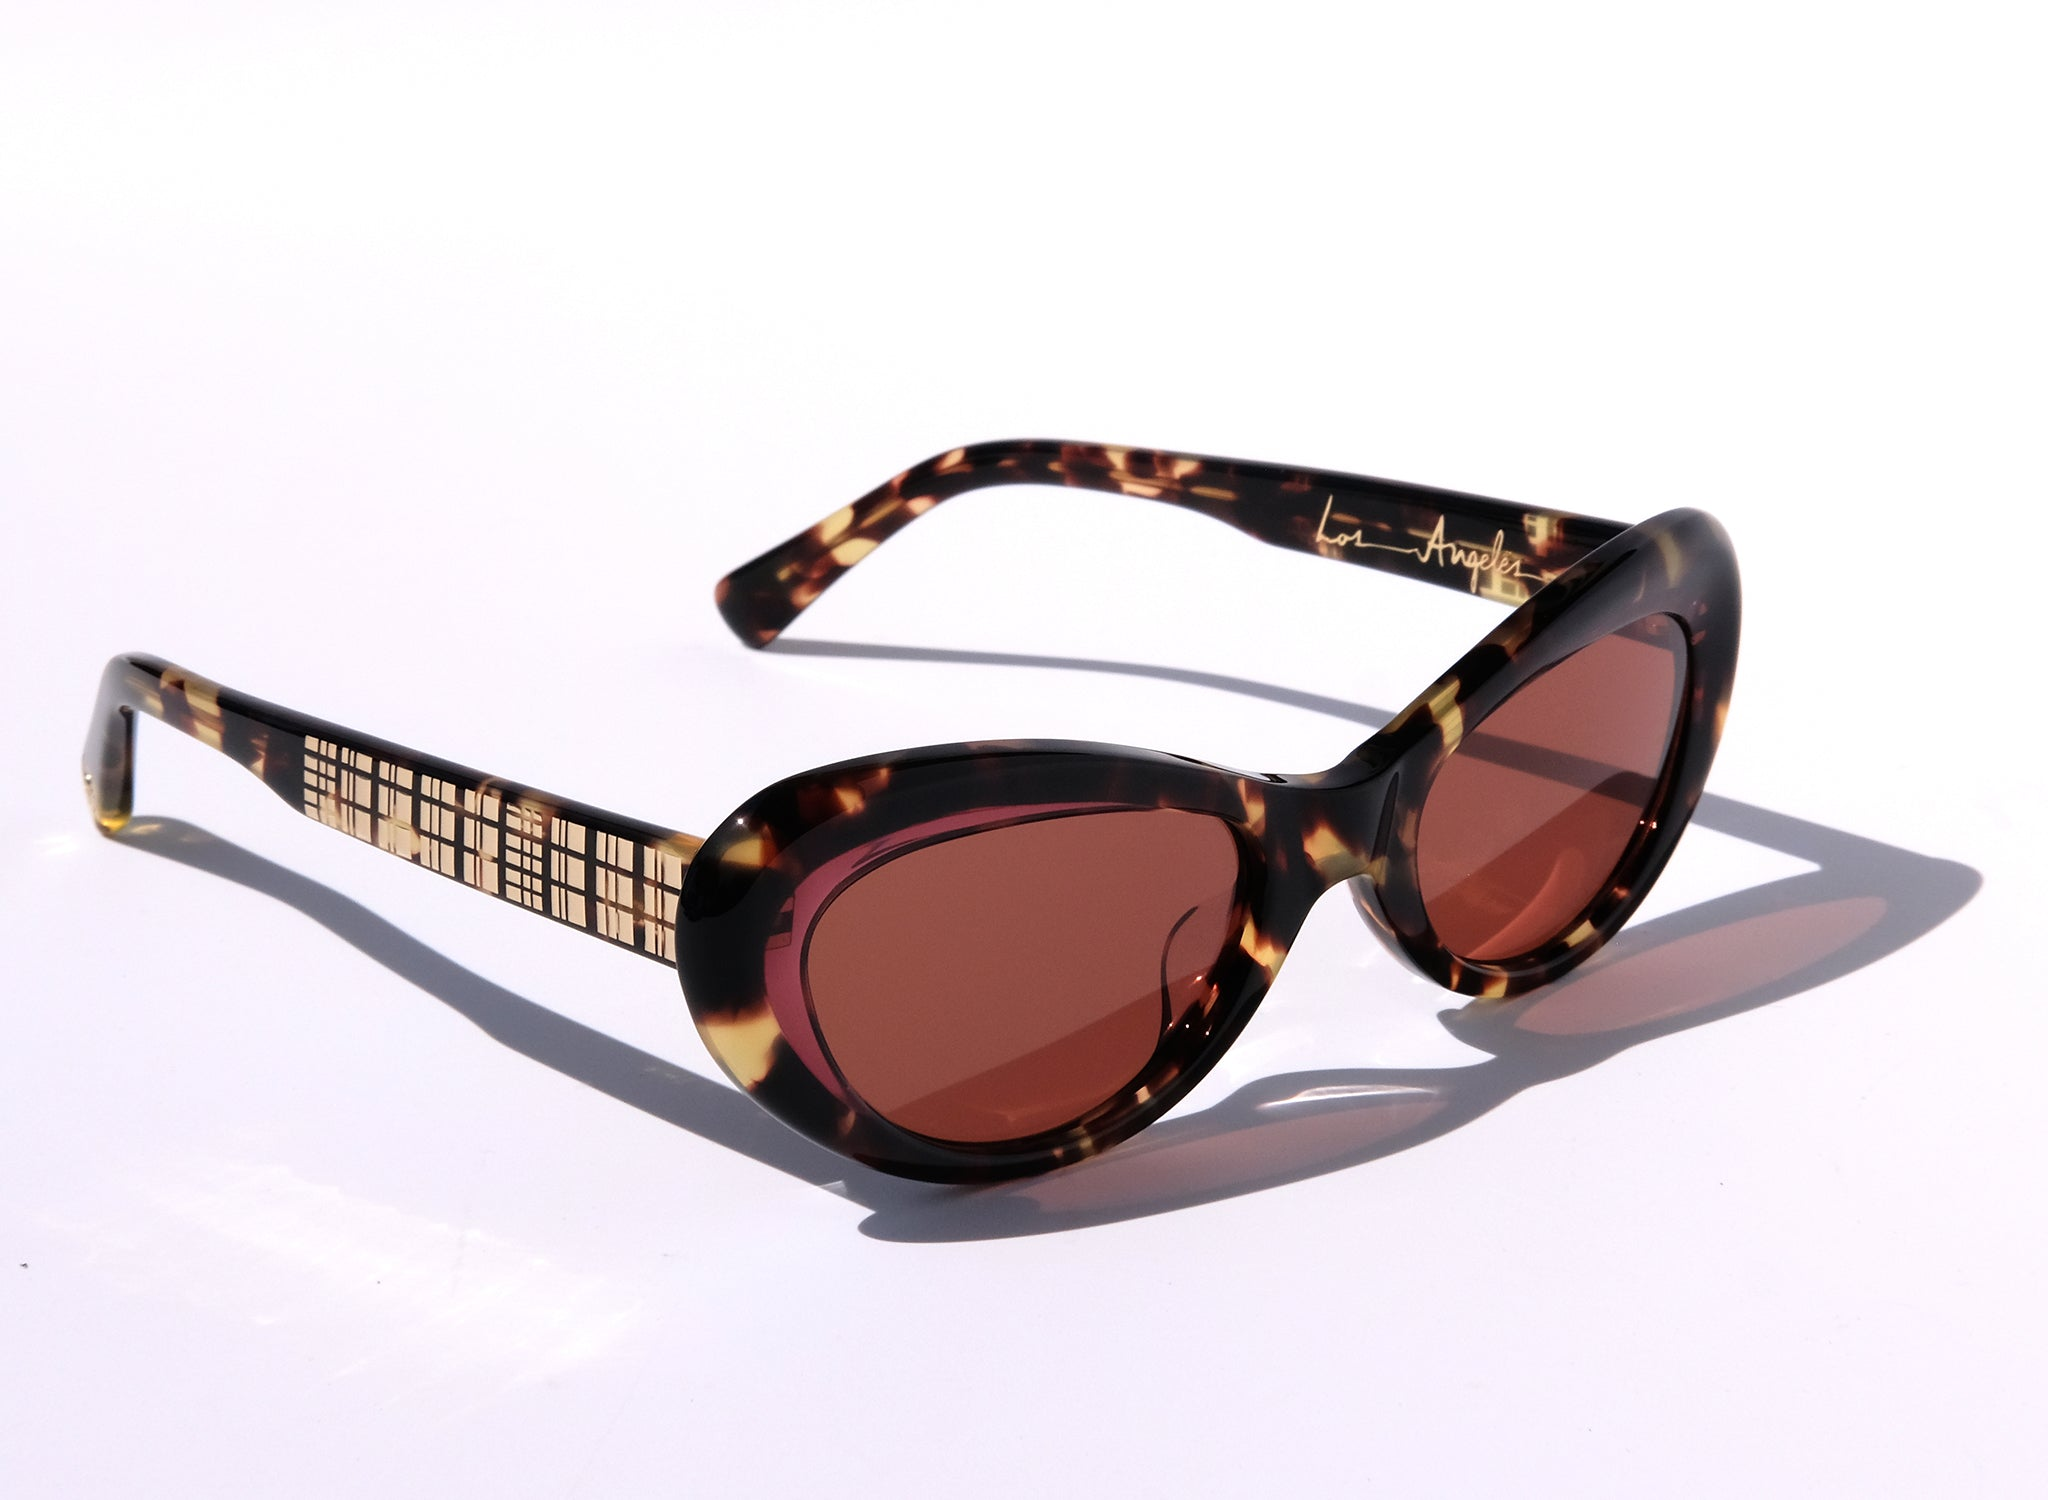 OCEANA IN PLUM TORTOISE, BROWN TORTOISE CAT EYE SUNGLASSES